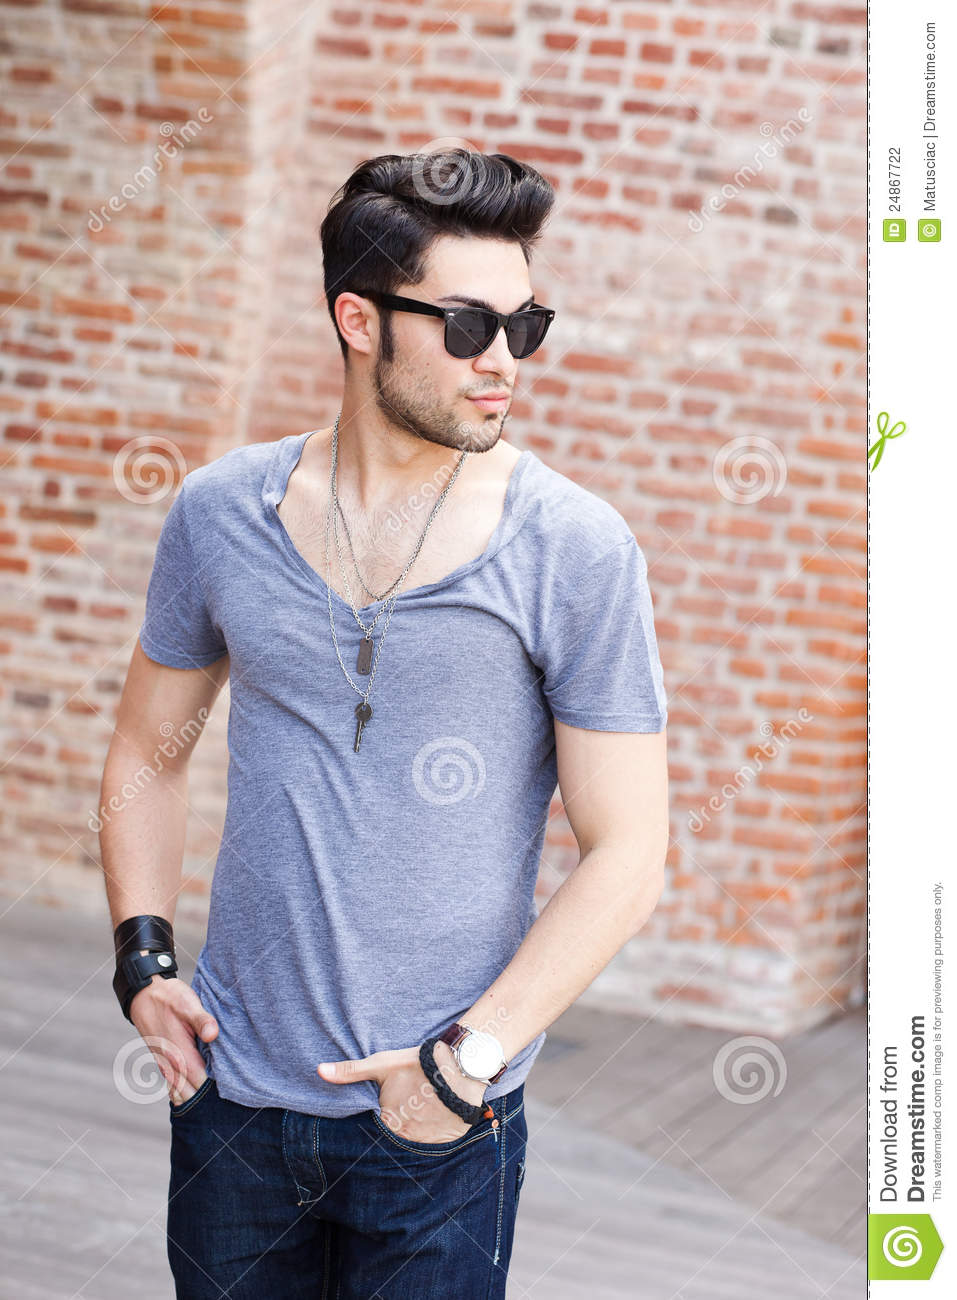 Attractive young male model posing outdoors